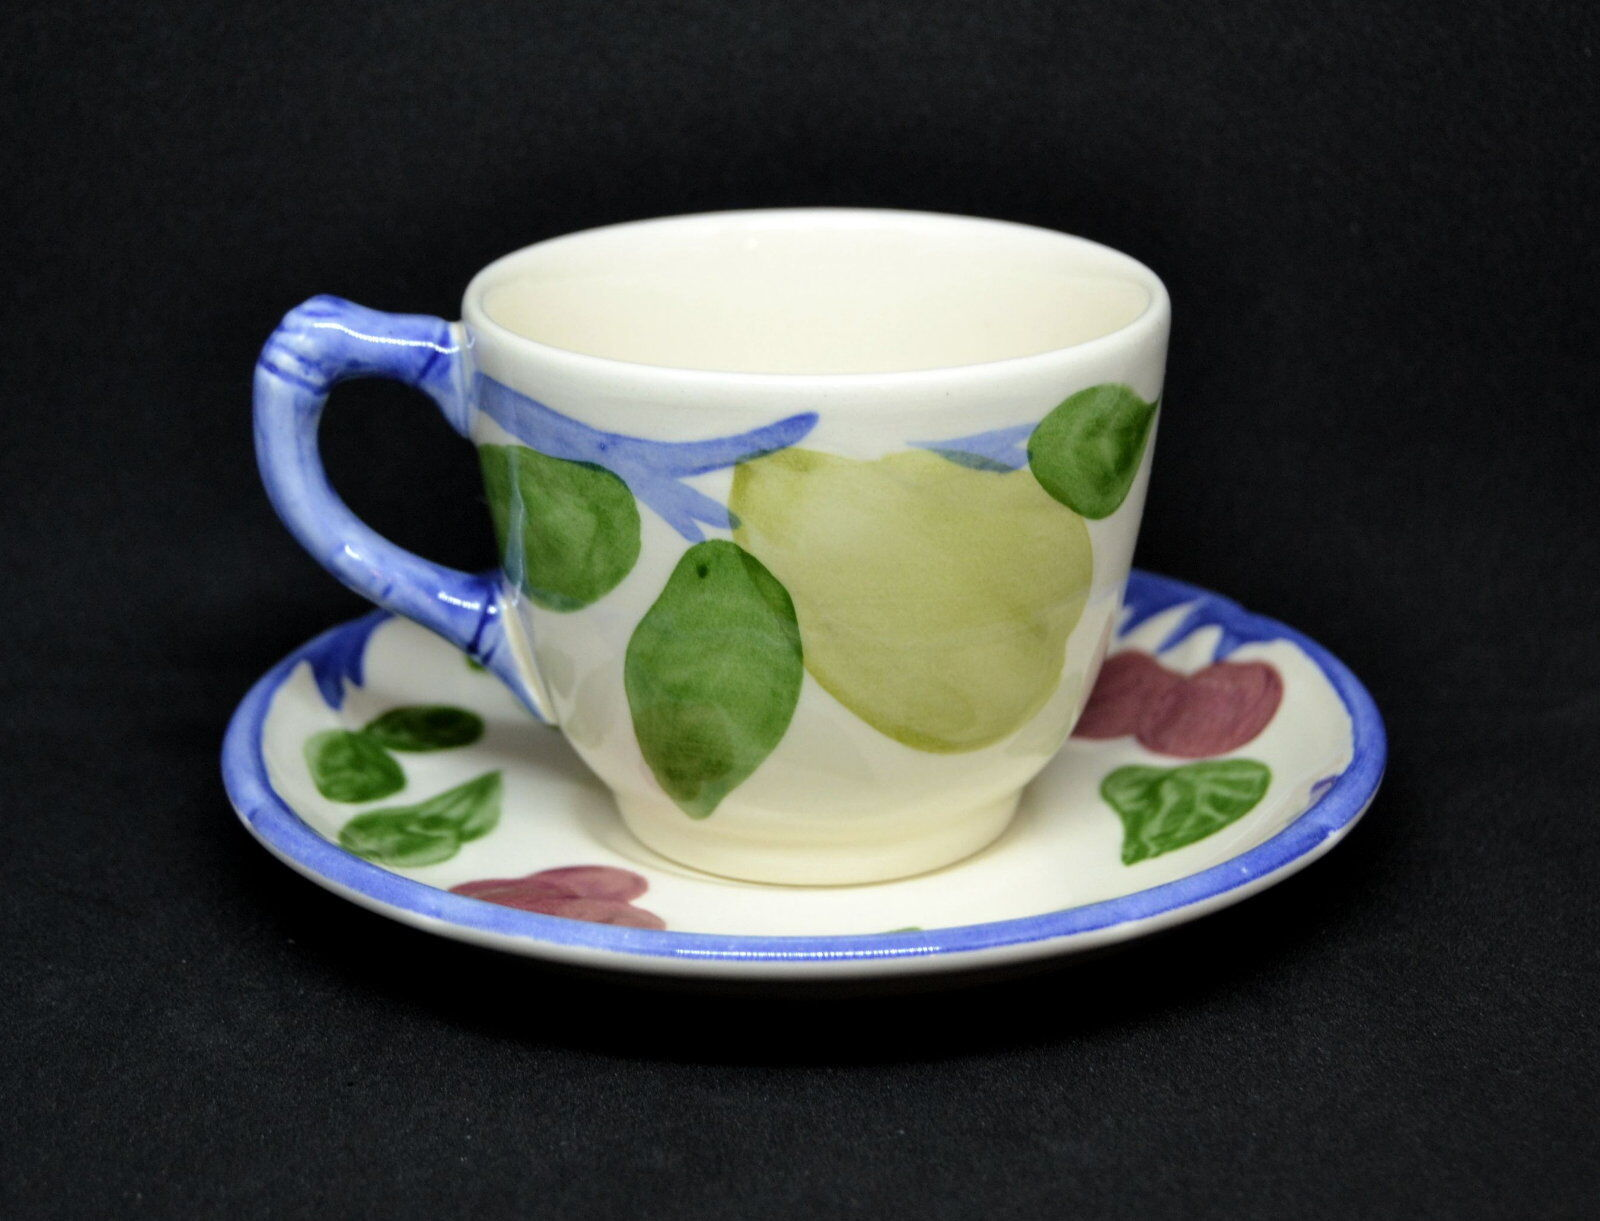 Franciscan Orchard Glade Cup And Saucer England - $6.50